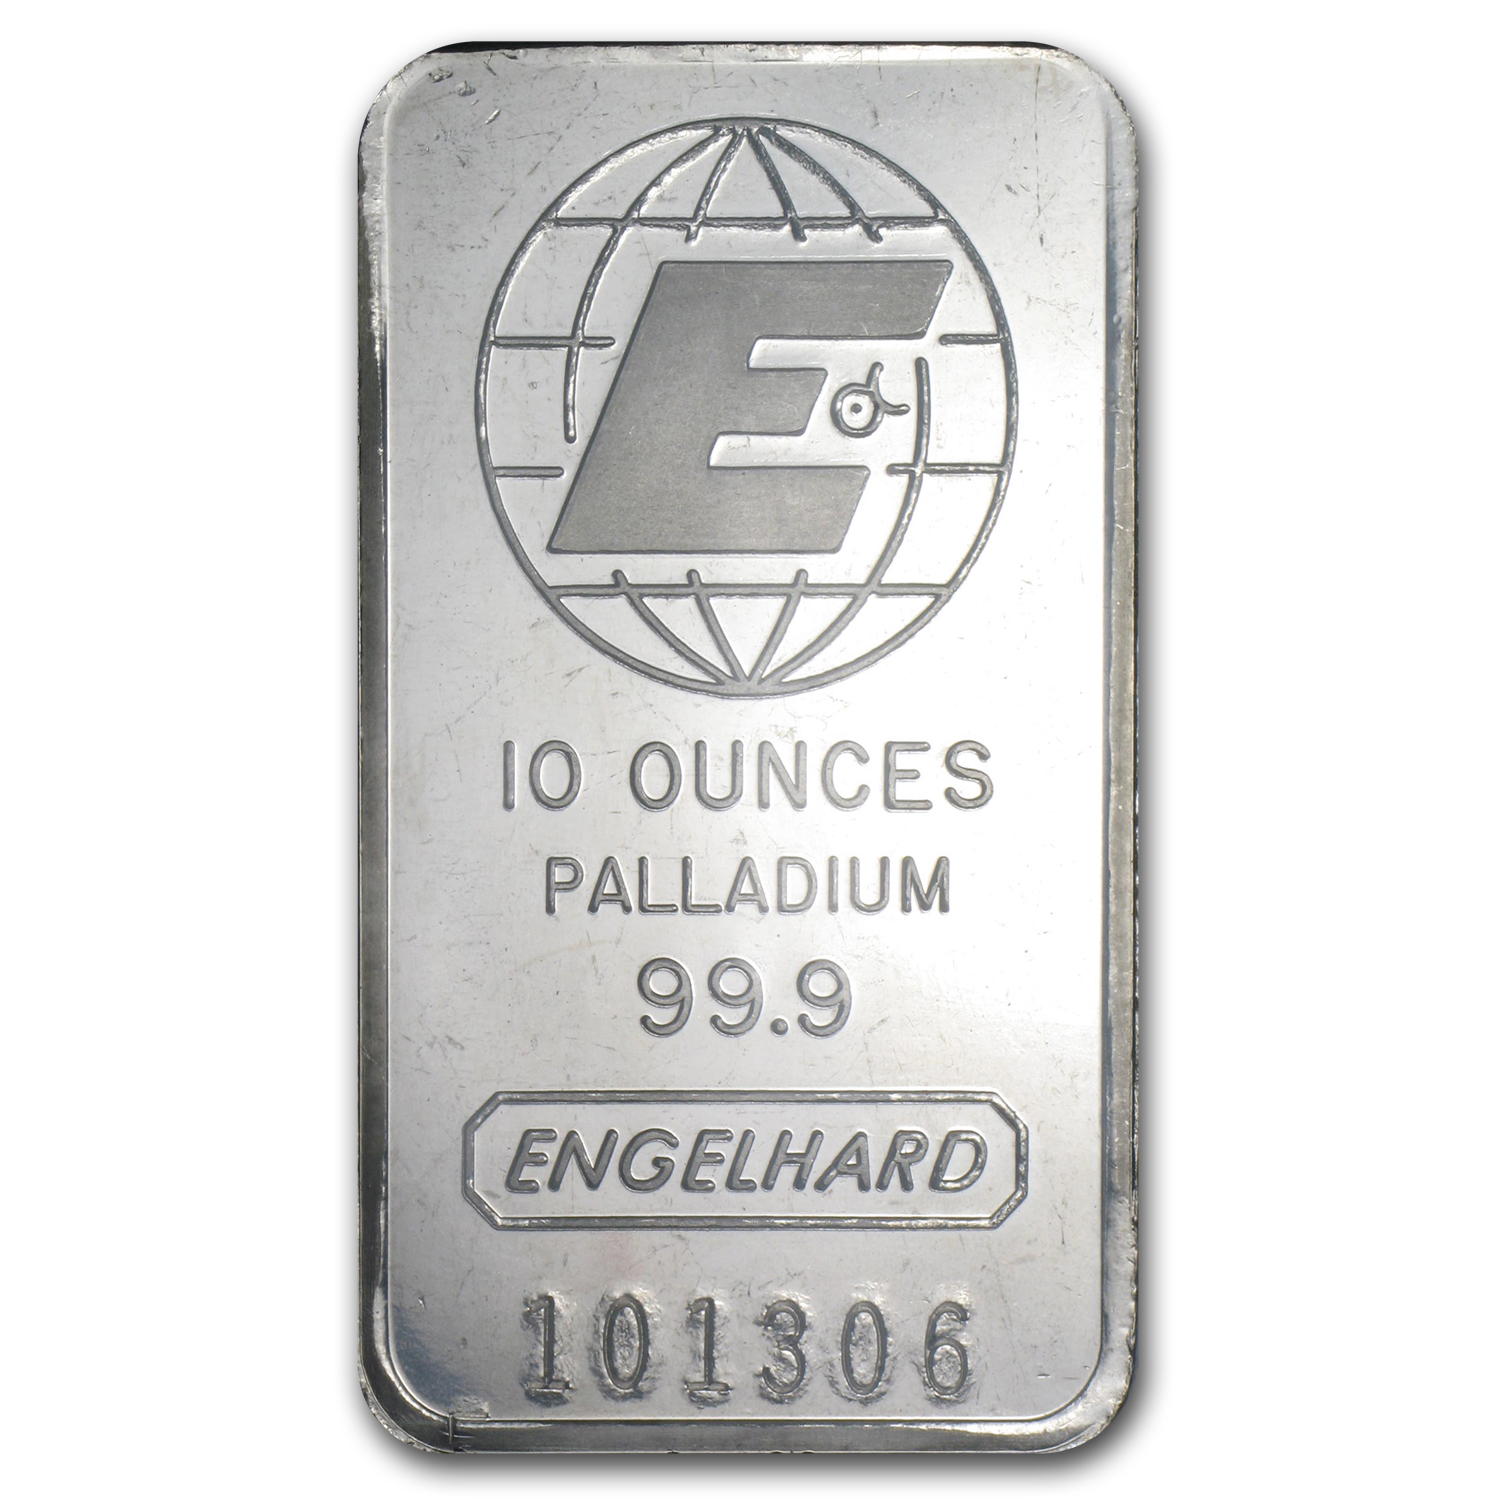 10 oz Palladium Bar - Engelhard (No Assay)